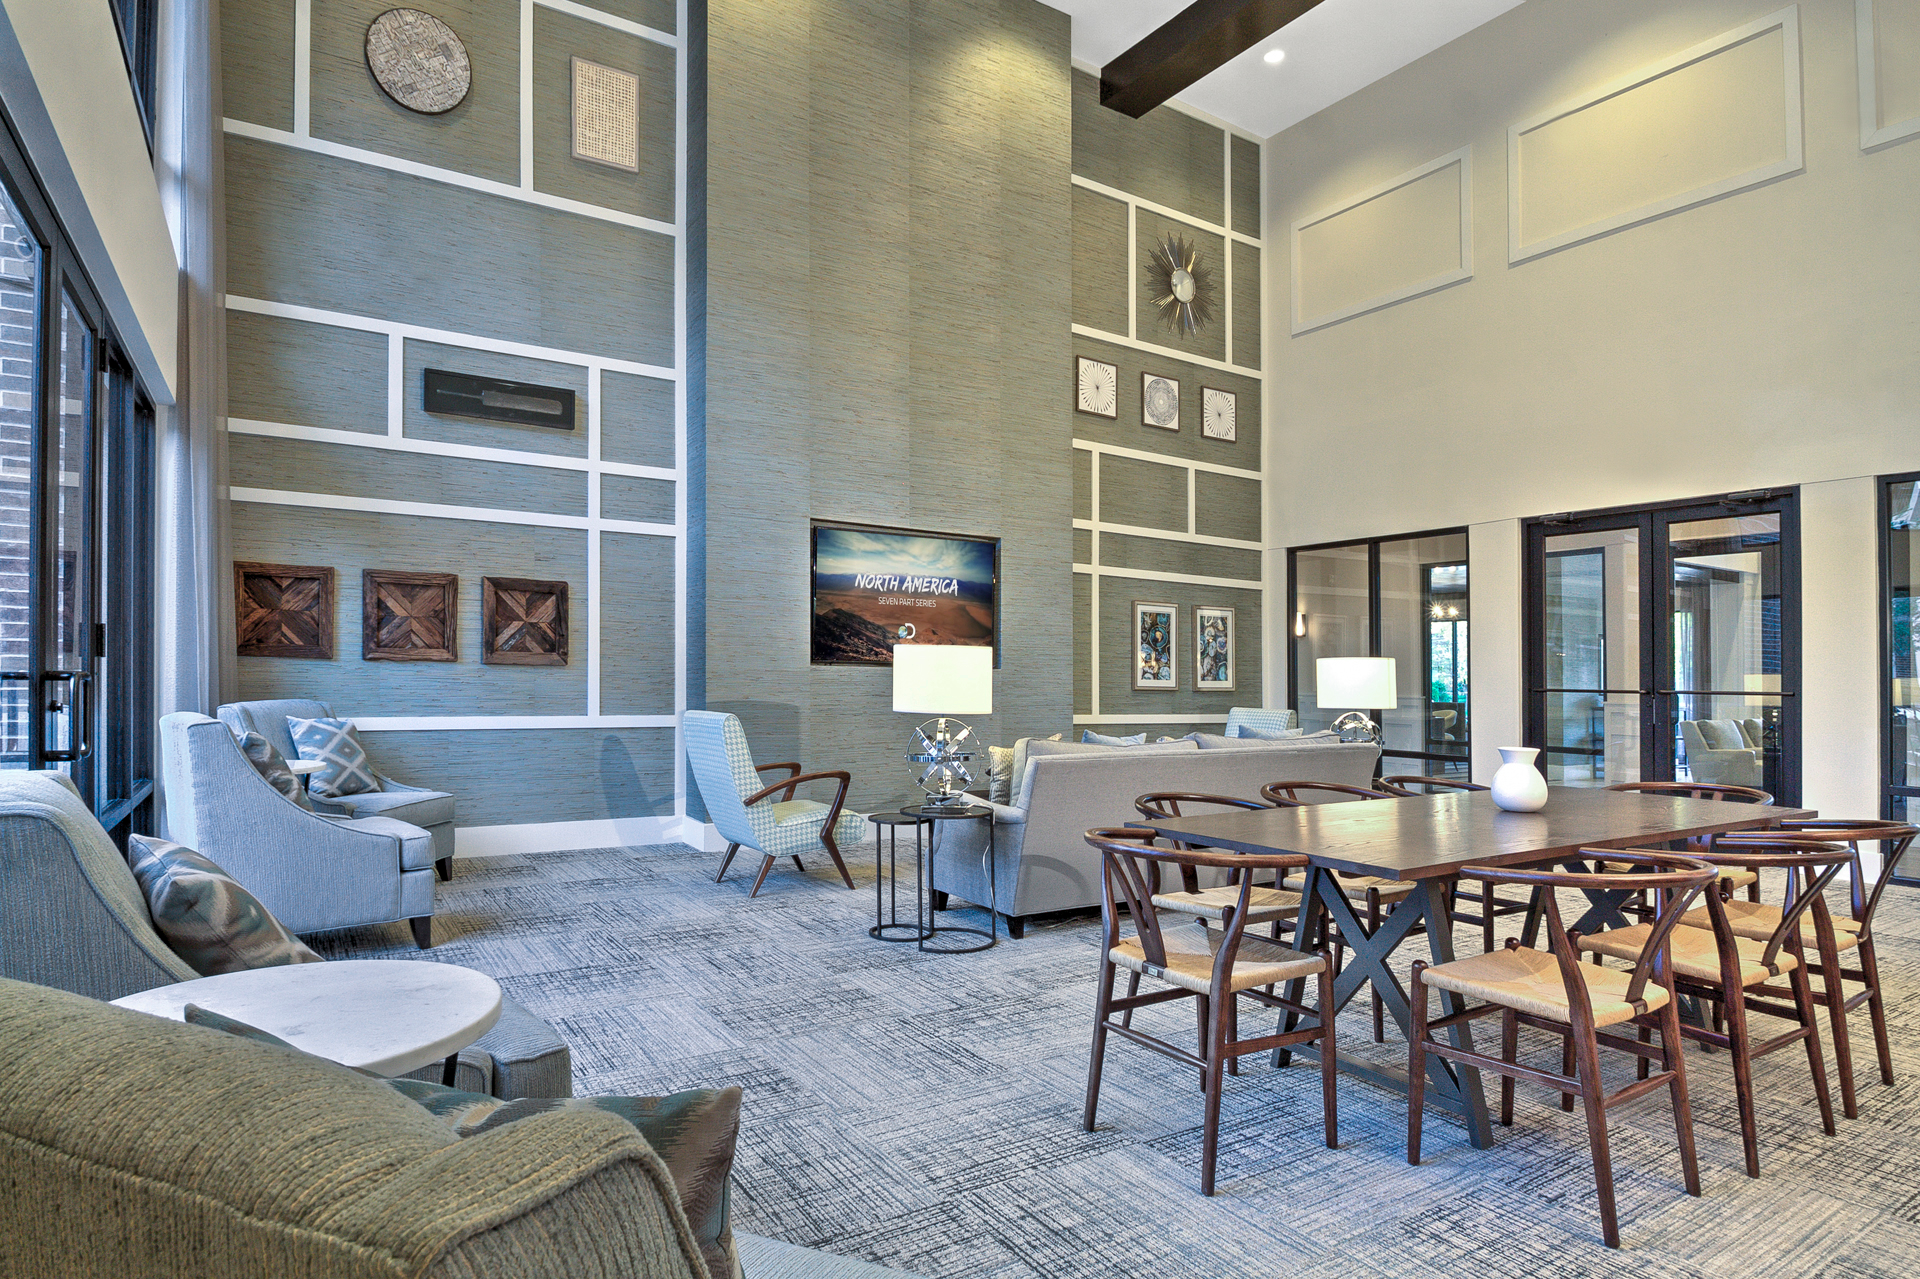 Holden Heights Apartments in Houston, TX image 7